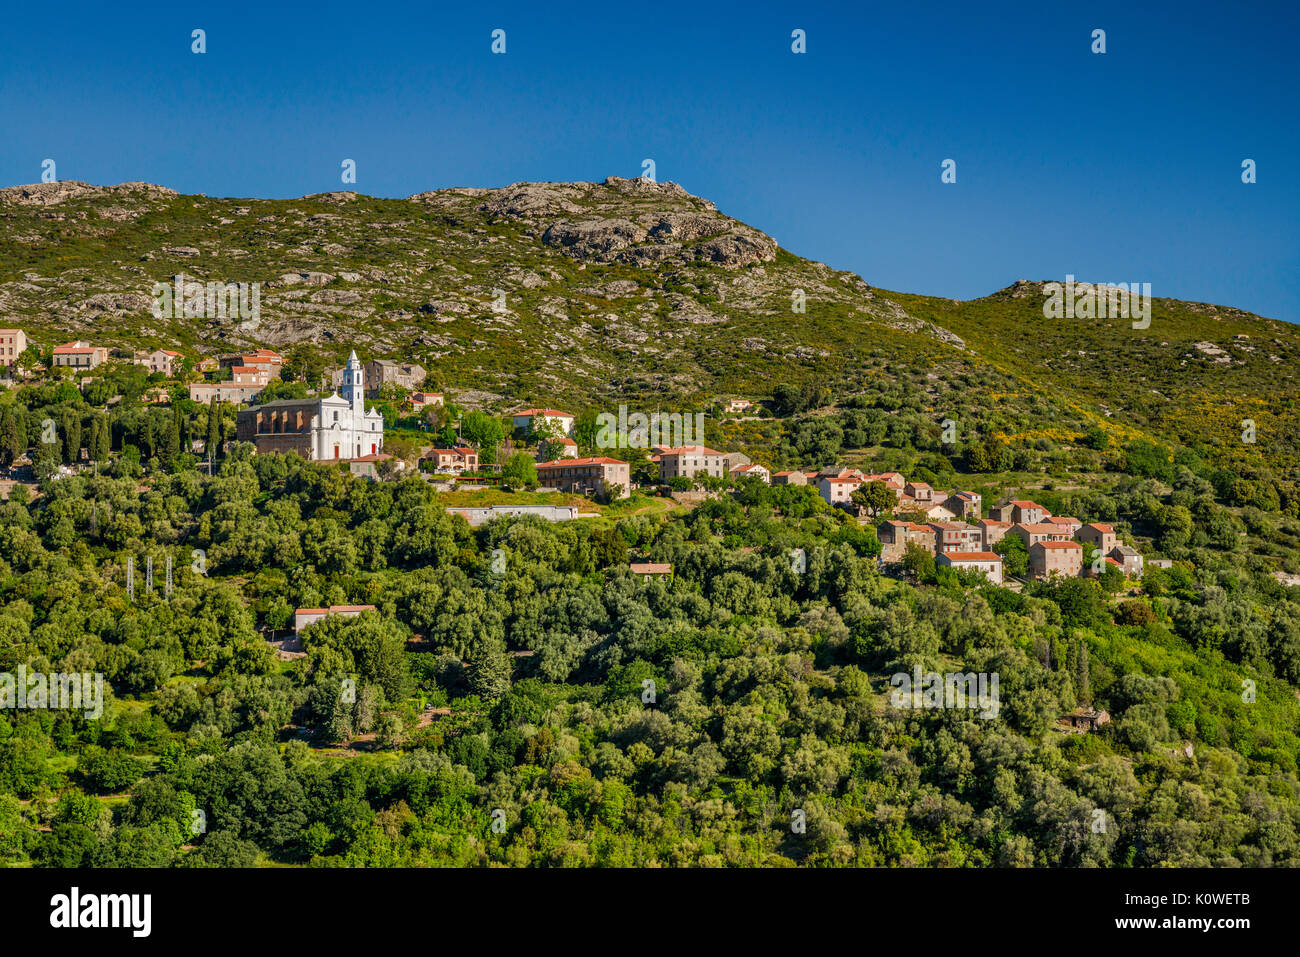 Hill town of Santo-Pietro-di-Tenda, Nebbio region, Haute-Corse department, Corsica, France - Stock Image